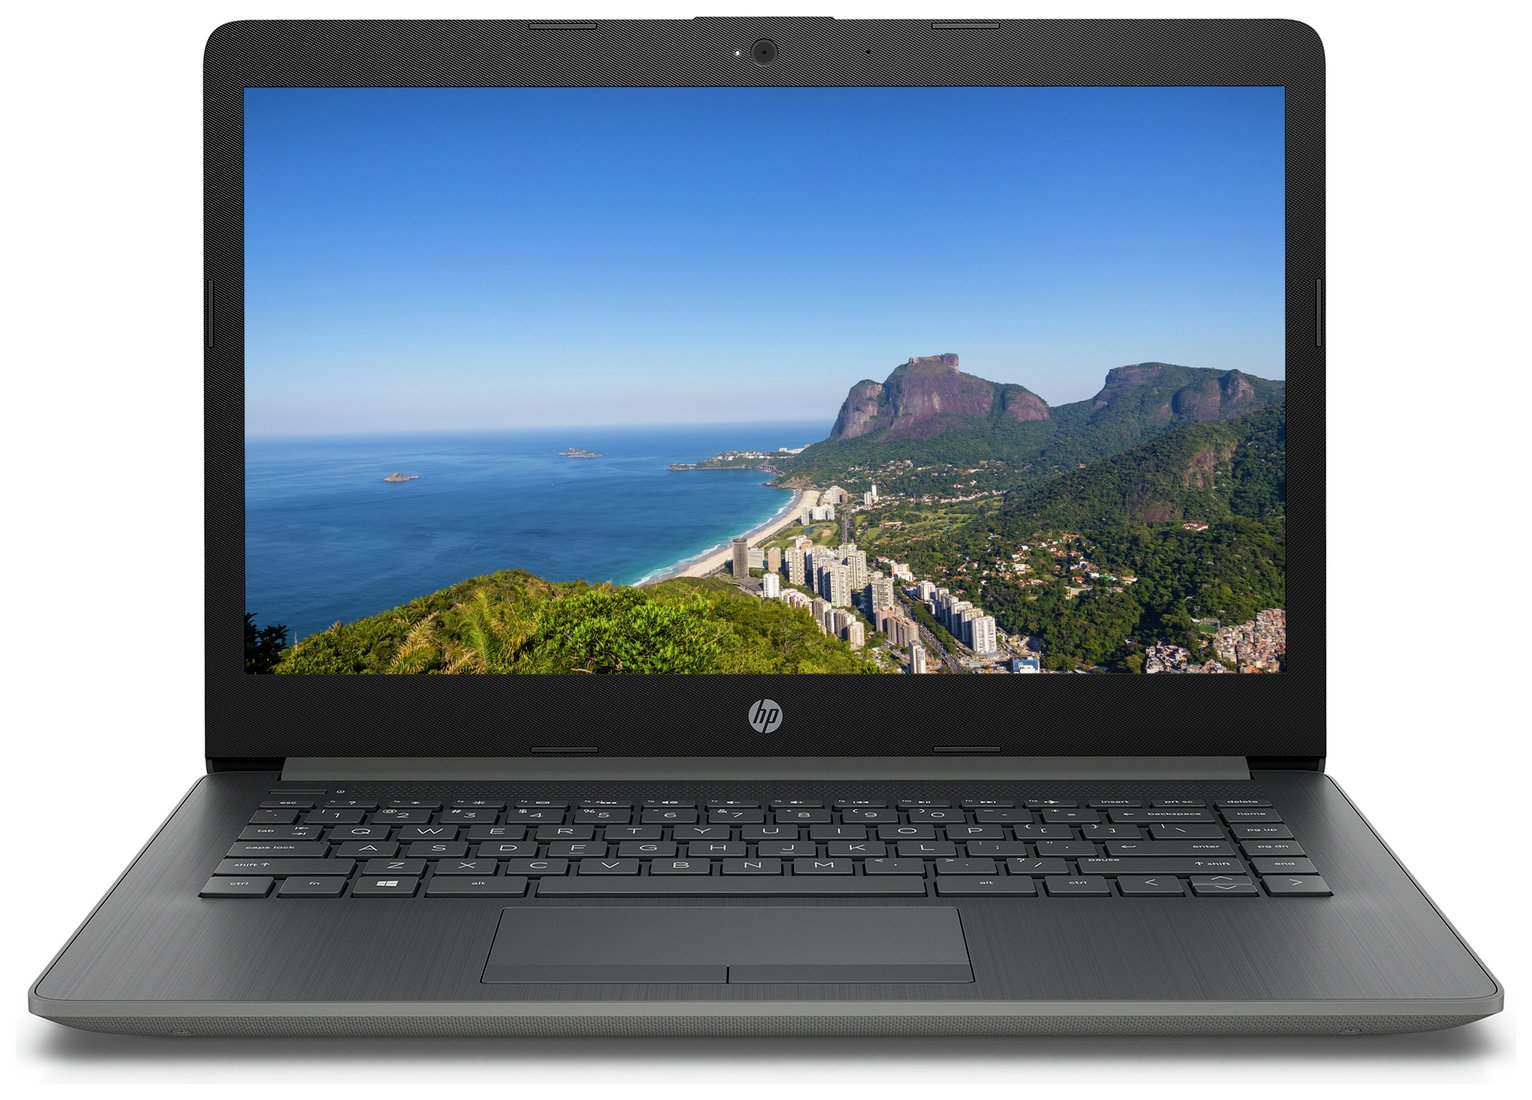 HP 14 Inch i3 4GB 128GB Full HD Laptop - Grey